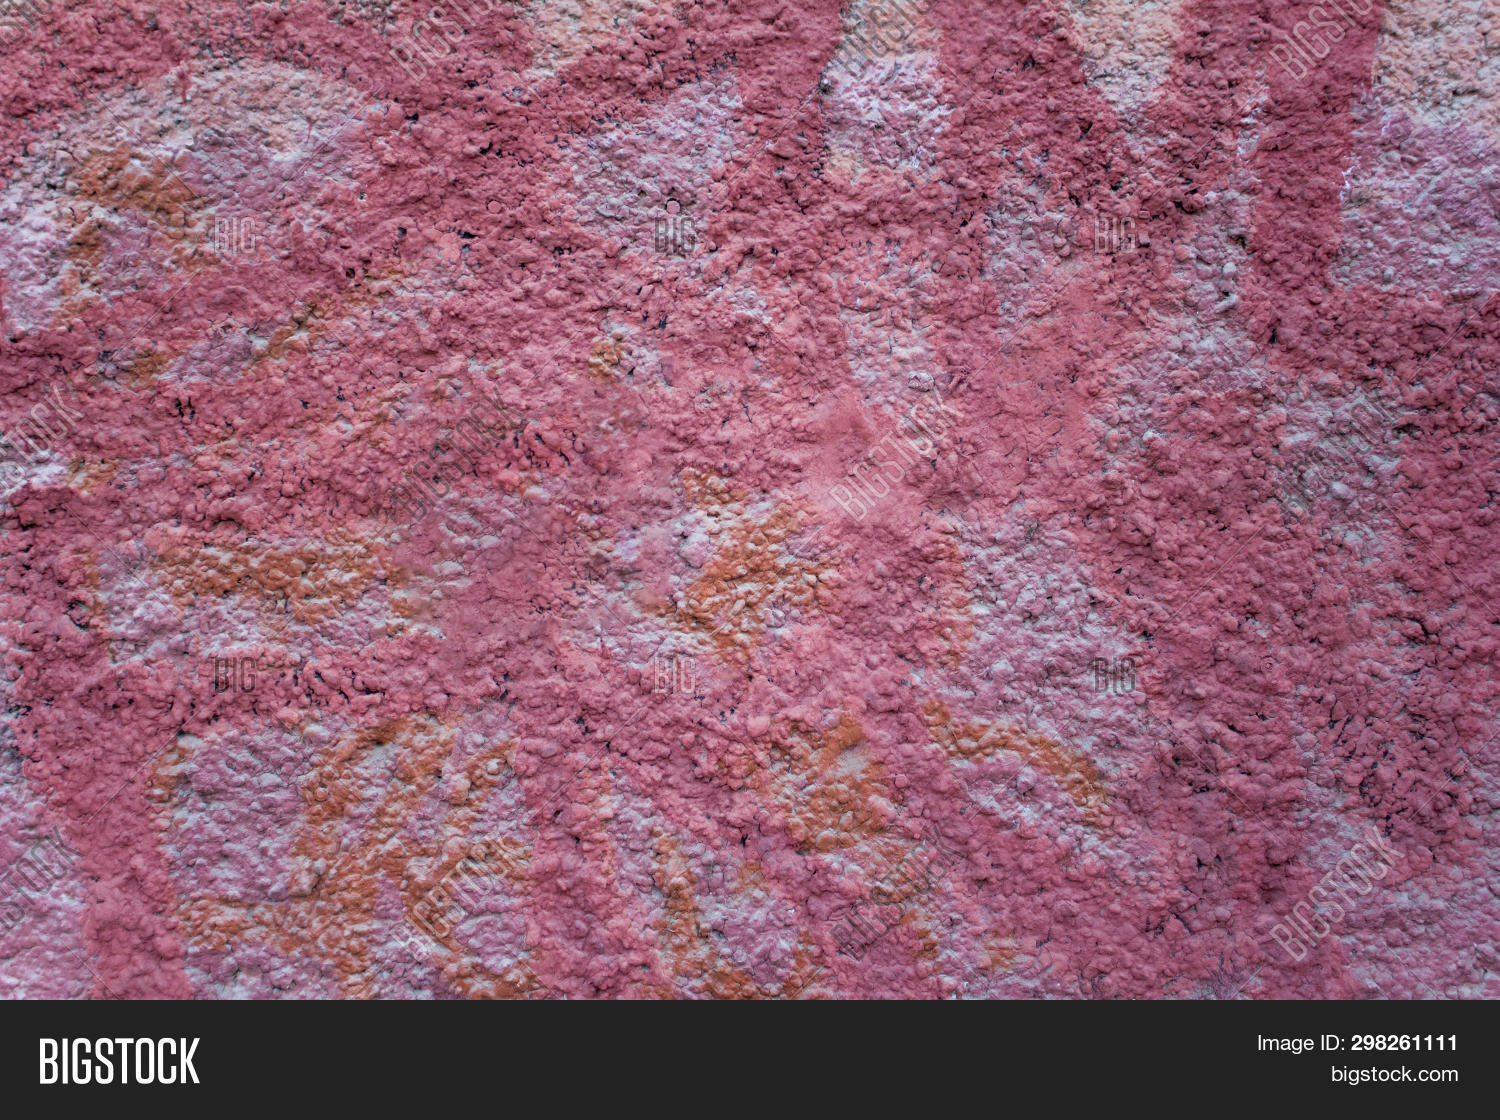 Pink Granular Concrete Image Photo Free Trial Stock